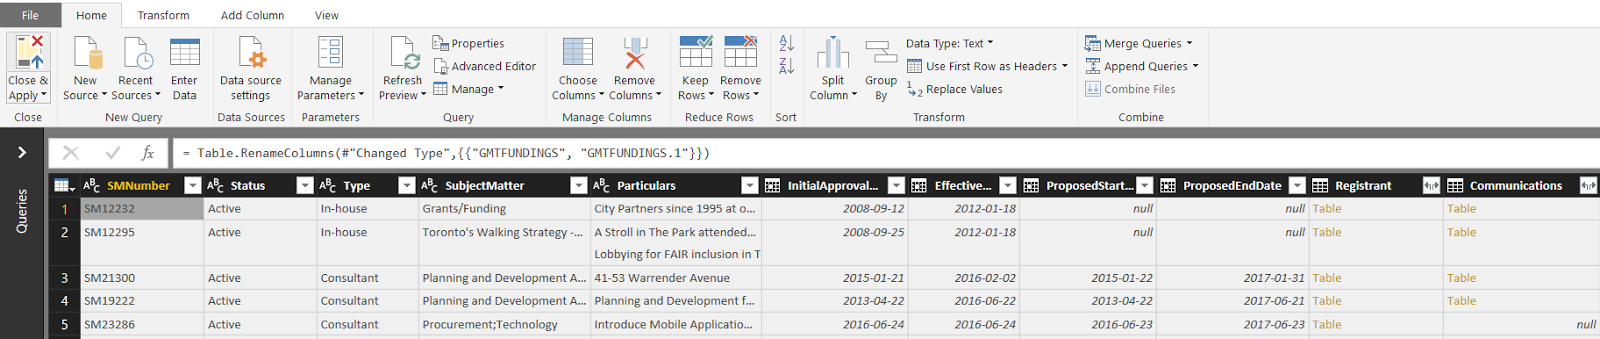 Data modeling in Power BI using XML file with Parent and